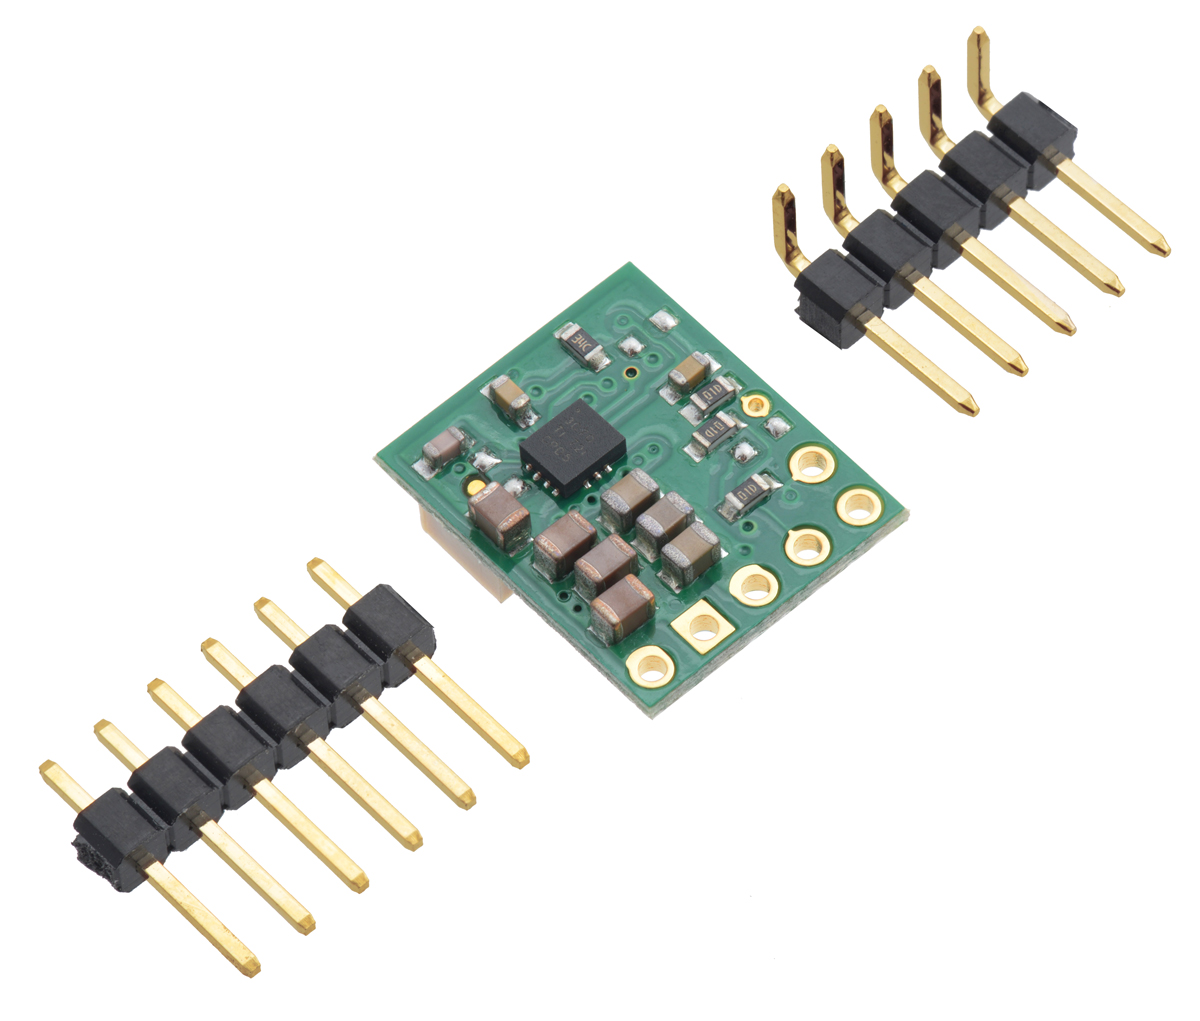 Pololu 25 9v Fine Adjust Step Up Down Voltage Regulator S9v11ma Low Battery Cut Off Circuit Electronic Projects The Through Holes Are Arranged With A 01 Spacing Along Edge Of Board For Compatibility Standard Solderless Breadboards And Perfboards